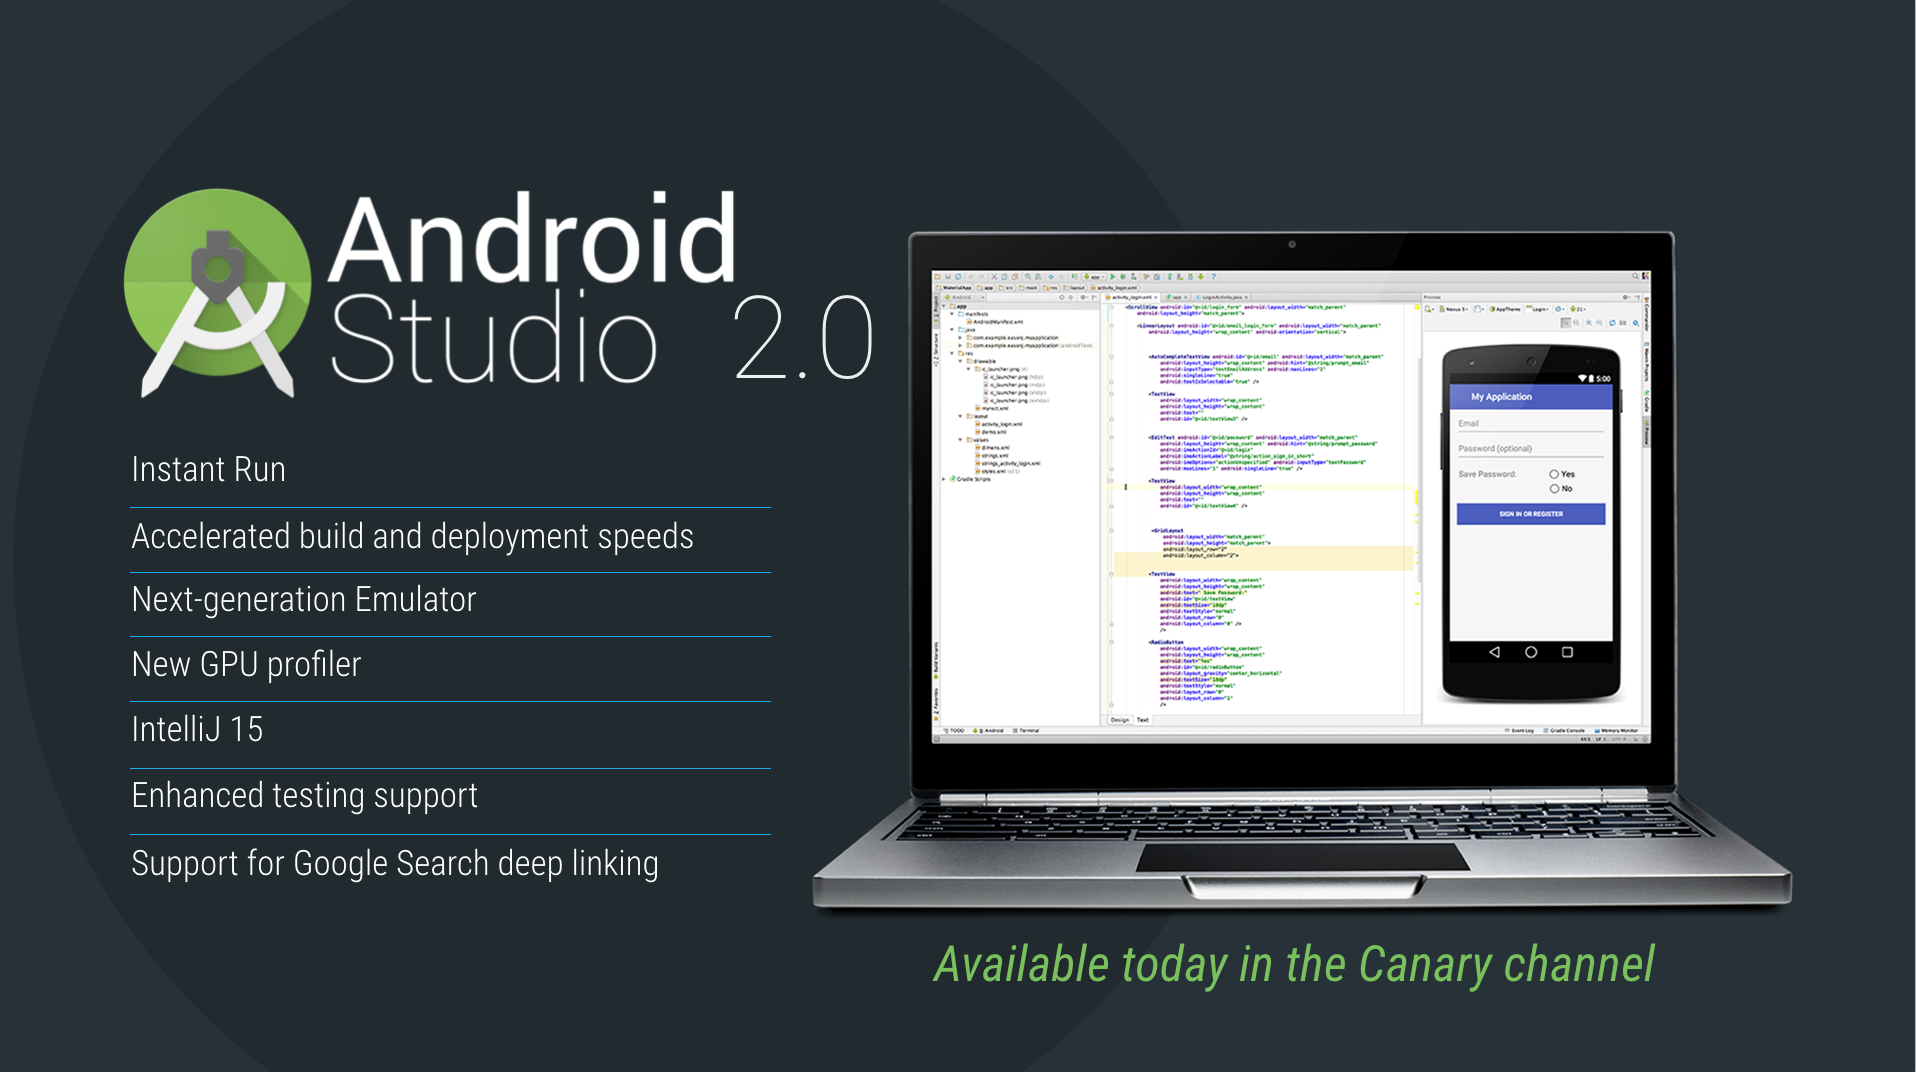 Google unveils Android Studio 2 0 with Instant Run, faster Android